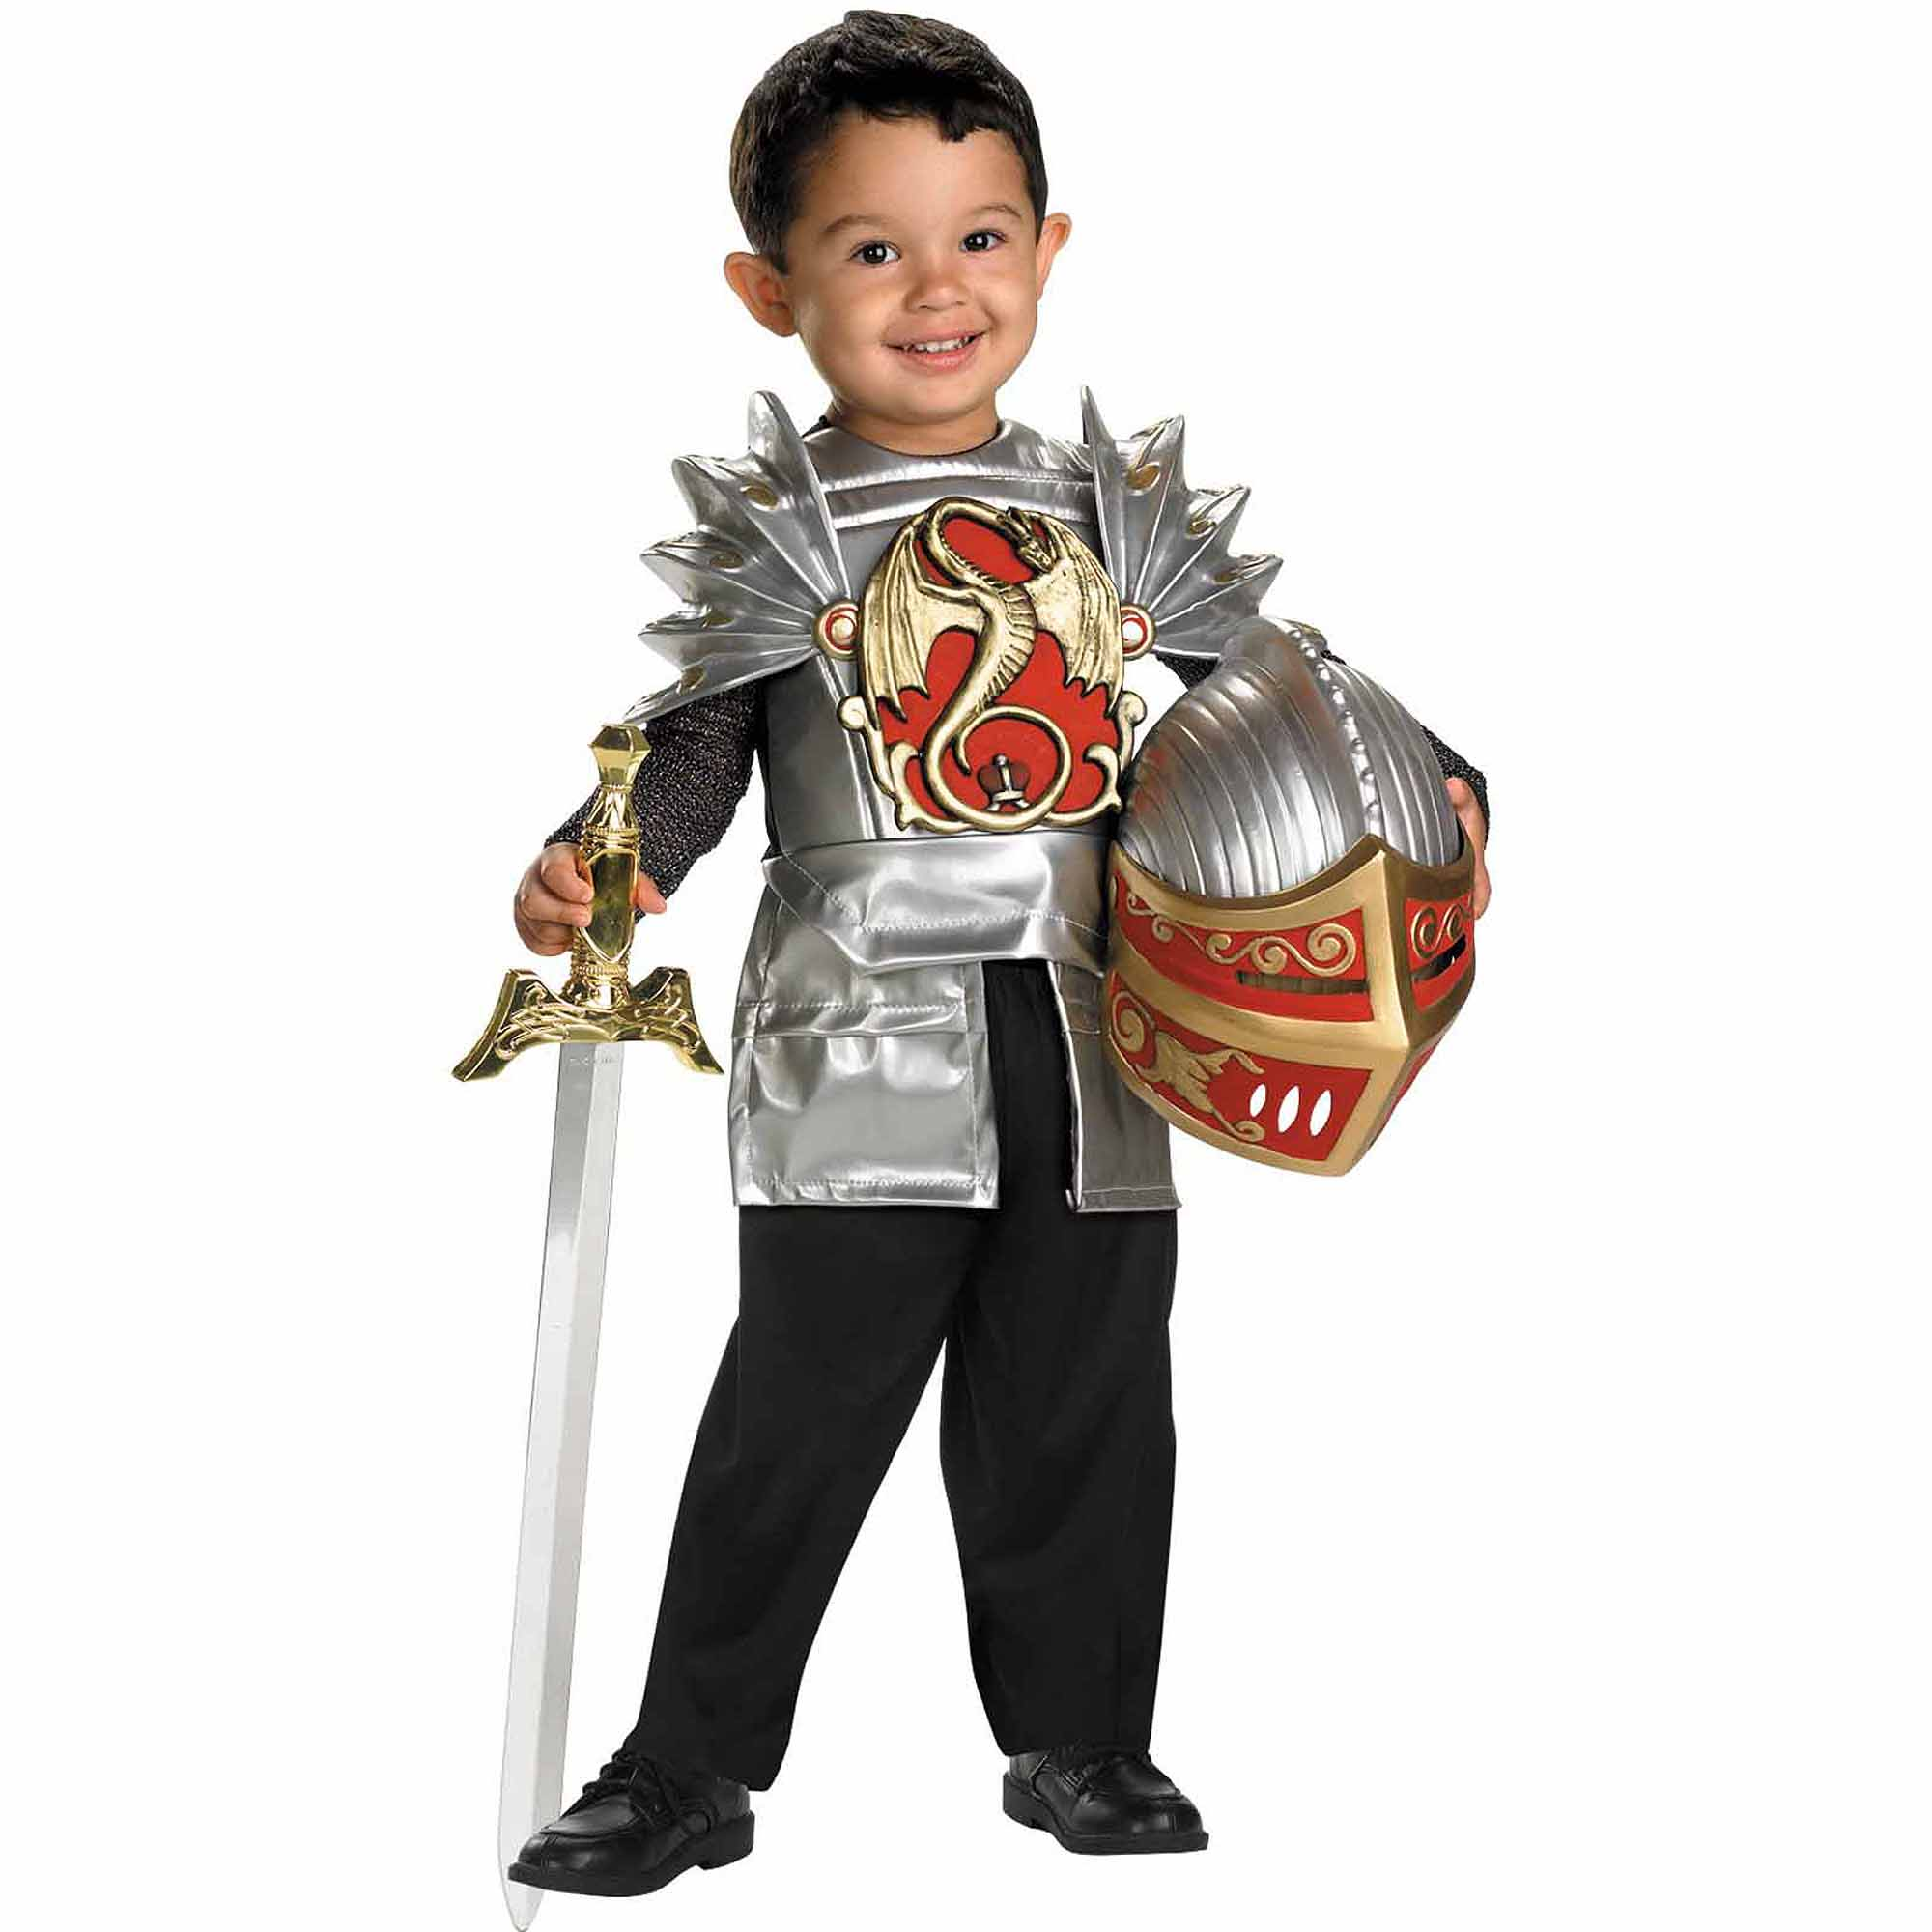 Knight of the Dragon Toddler Halloween Costume